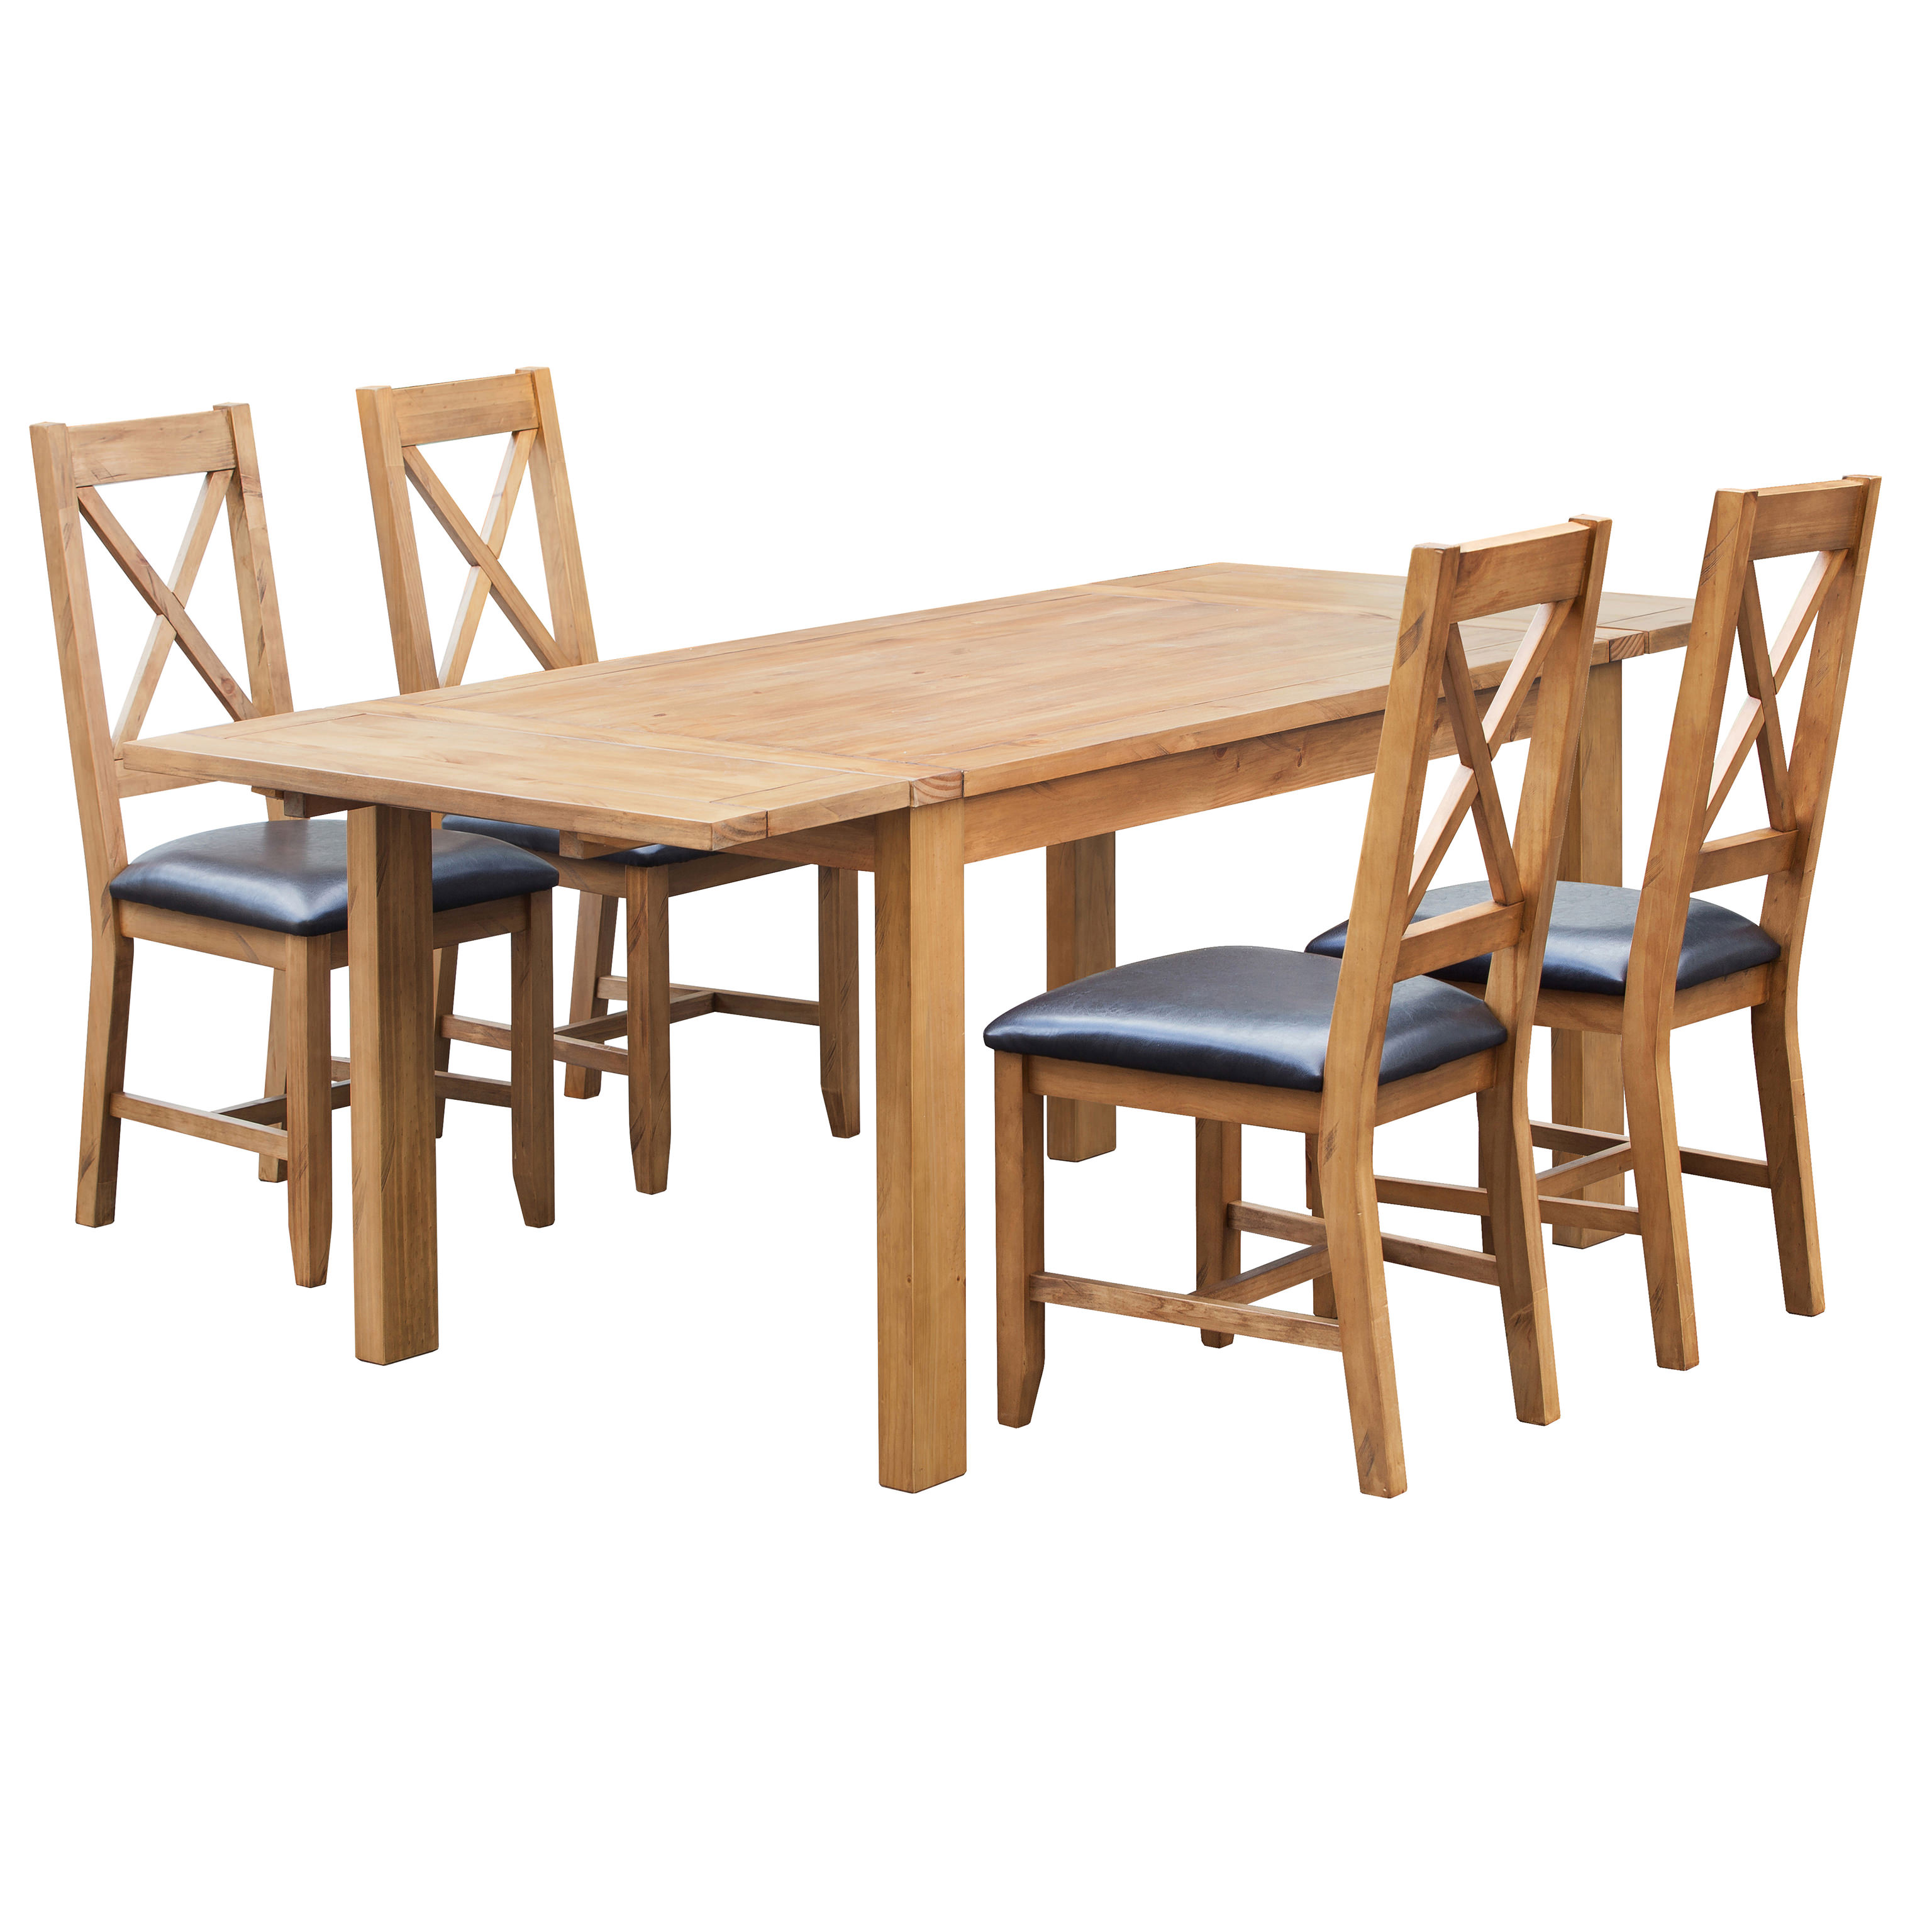 Esstisch Pinie Massiv Ausziehbar Solid Pine Extending Extendable Dining Table And Chair Set